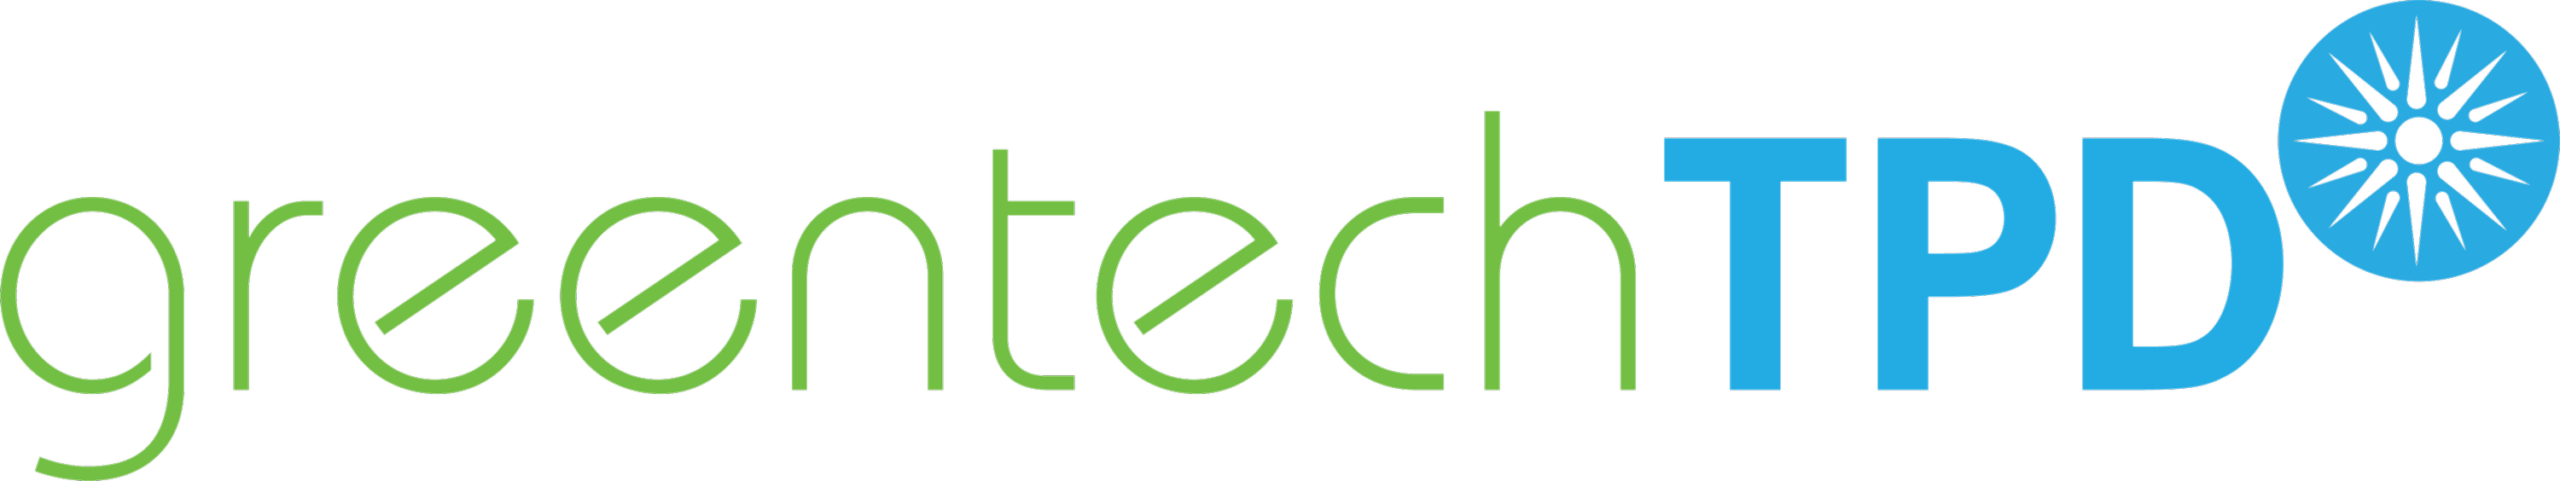 Logo greentechTPD